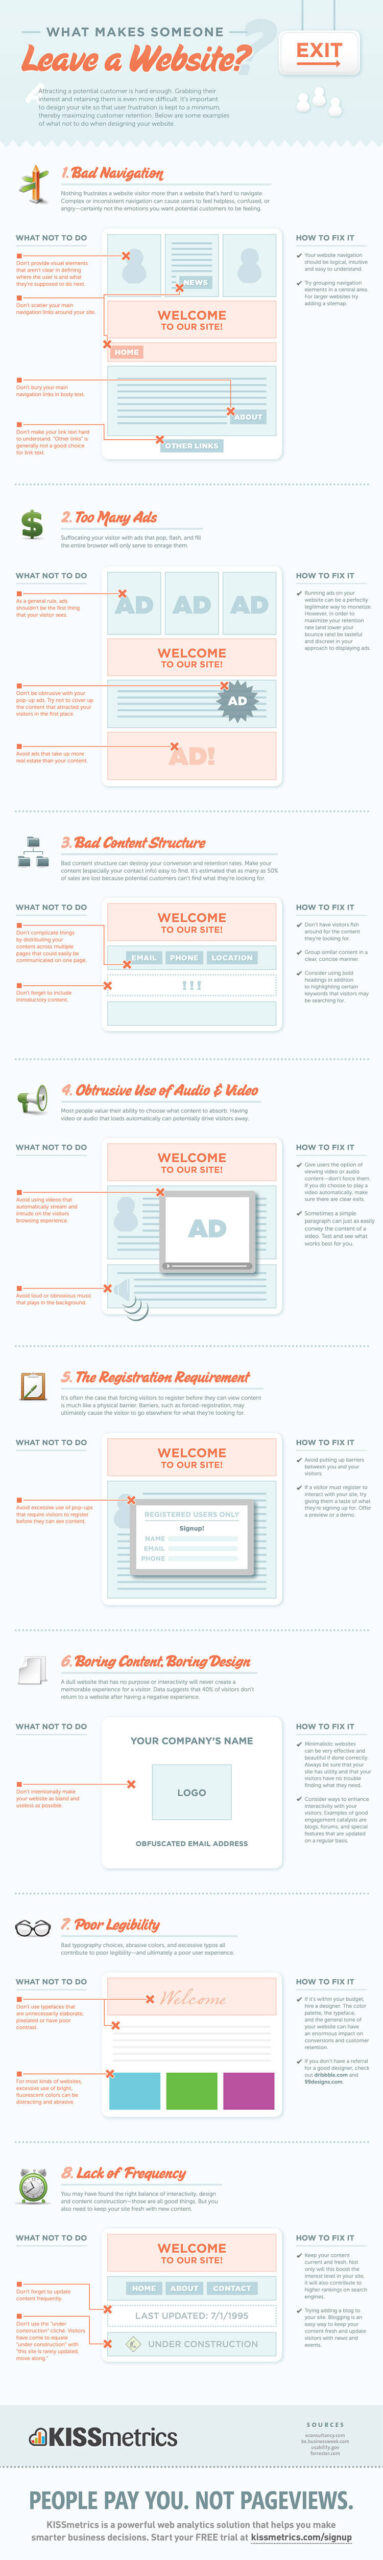 Situations that cause visitors to leave your site